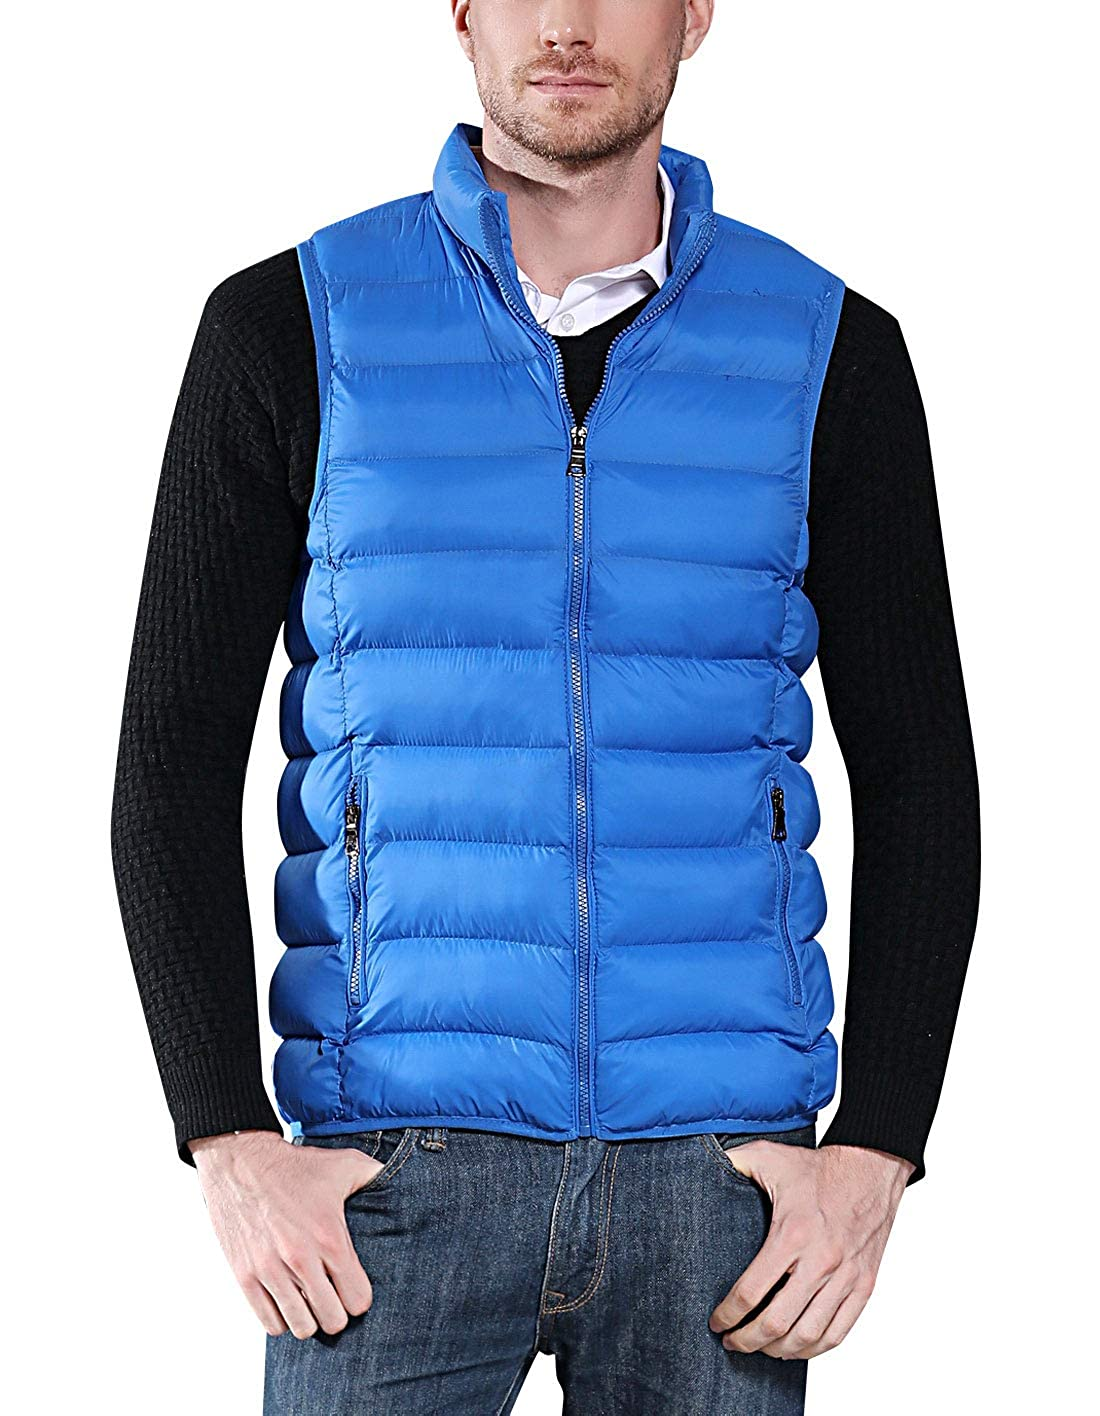 COUTUDI Mens Winter Warm Down Cotton Vest Fashion Casual Coat